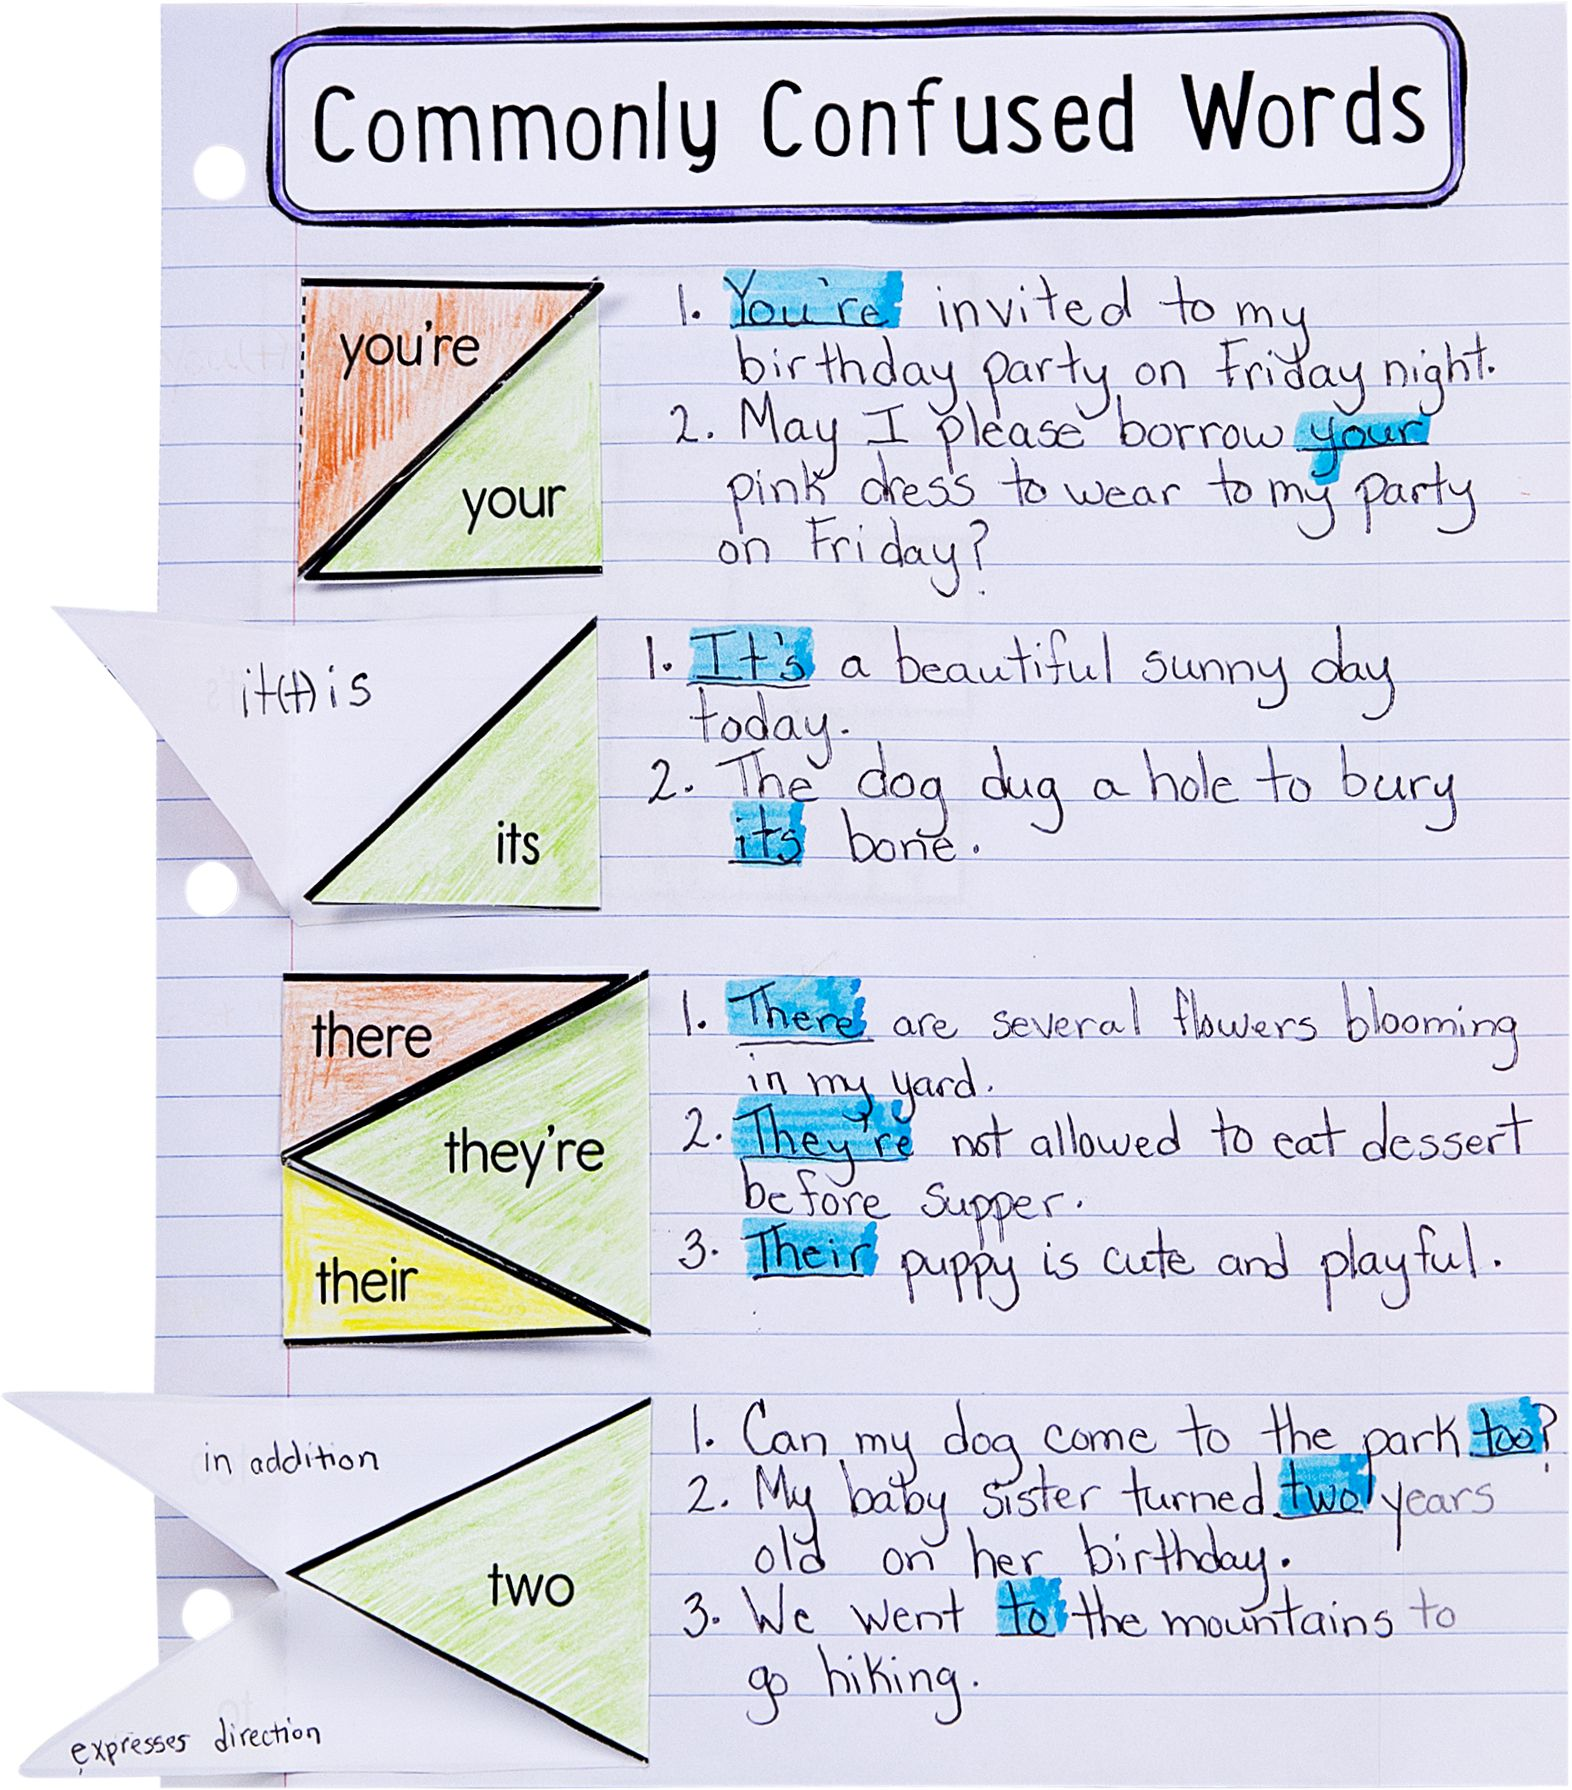 18 Commonly confused words ideas   commonly confused words [ 1790 x 1572 Pixel ]